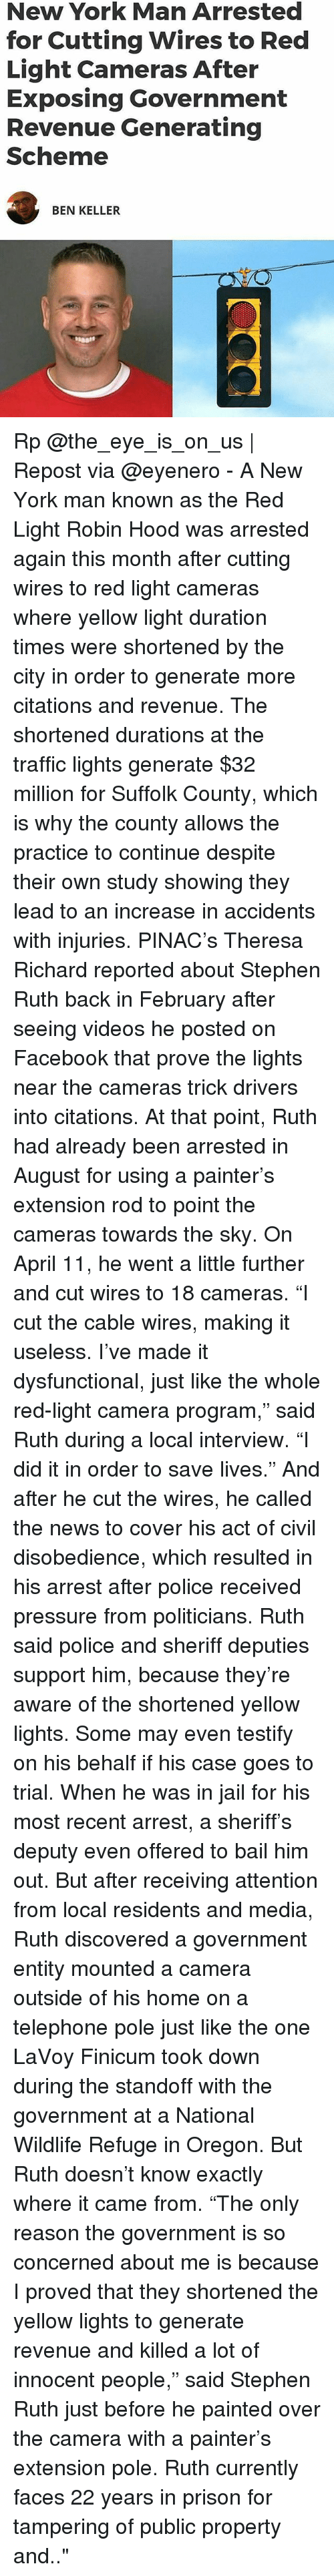 """dysfunctional: New York Man Arrested  for Cutting Wires to Red  Light Cameras After  Exposing Government  Revenue Generating  Scheme  BEN KELLER Rp @the_eye_is_on_us 